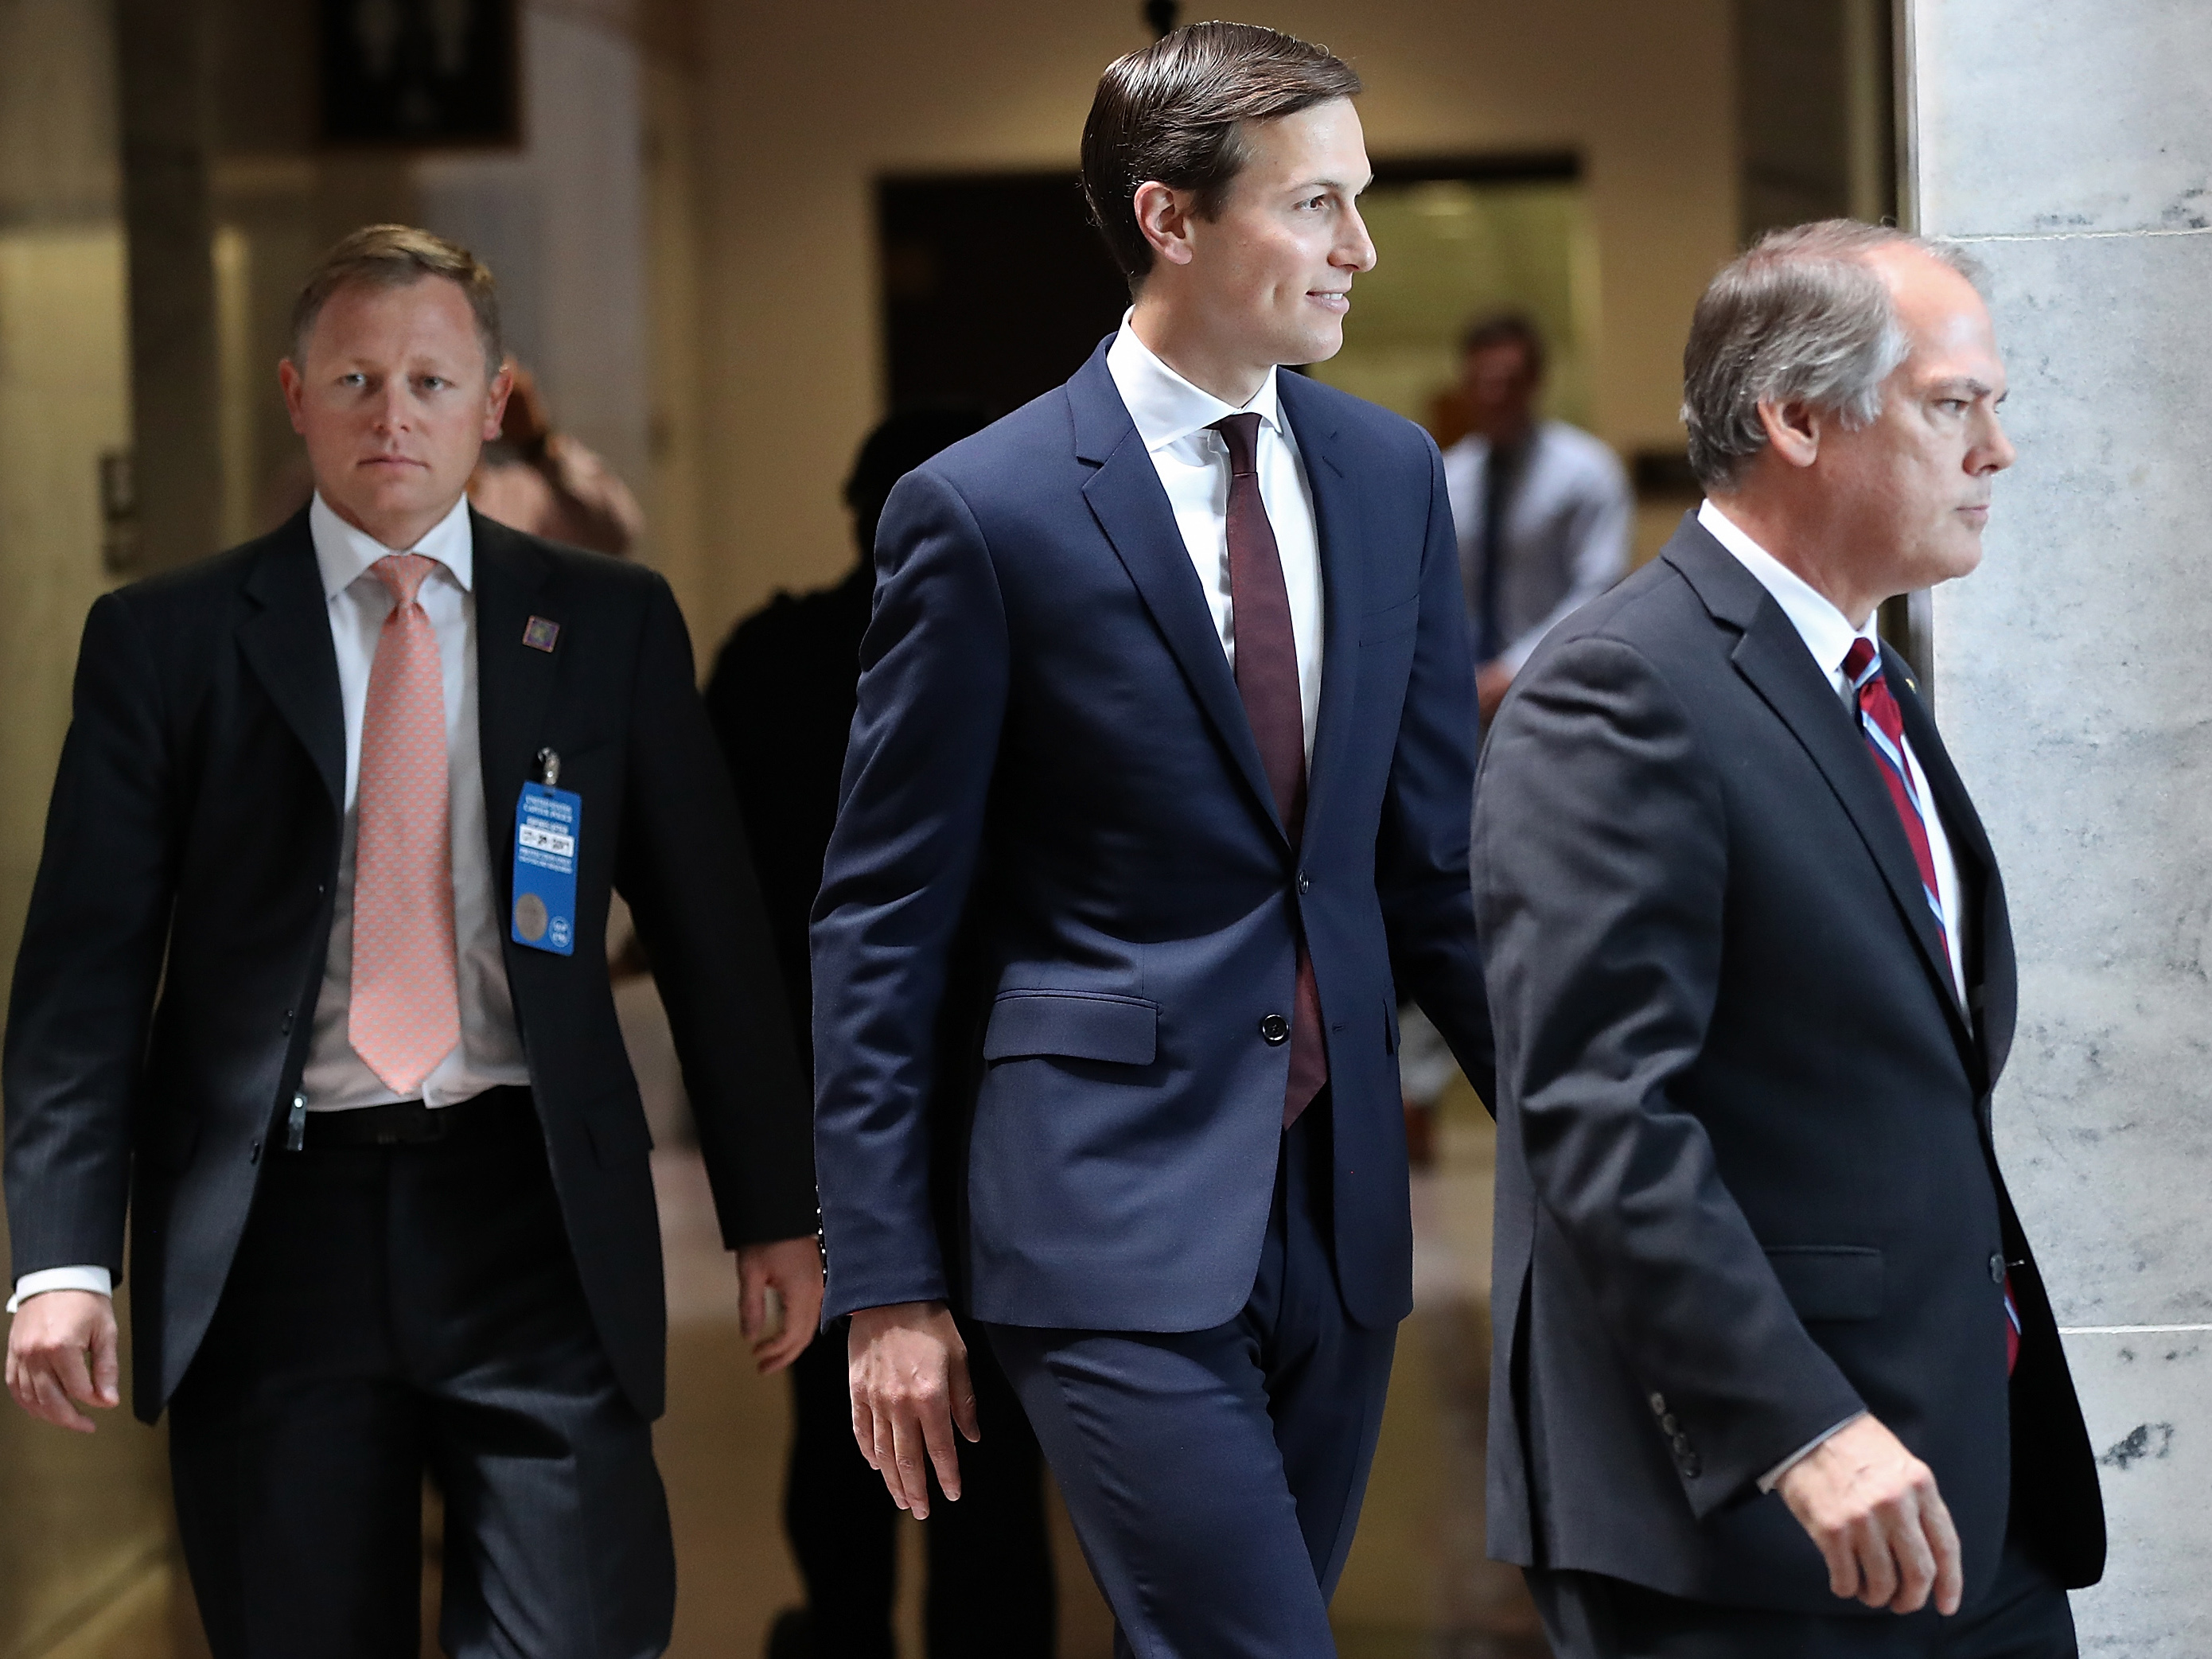 Jared Kushner Interviewed By Senate Intelligence Cmte In Closed Session